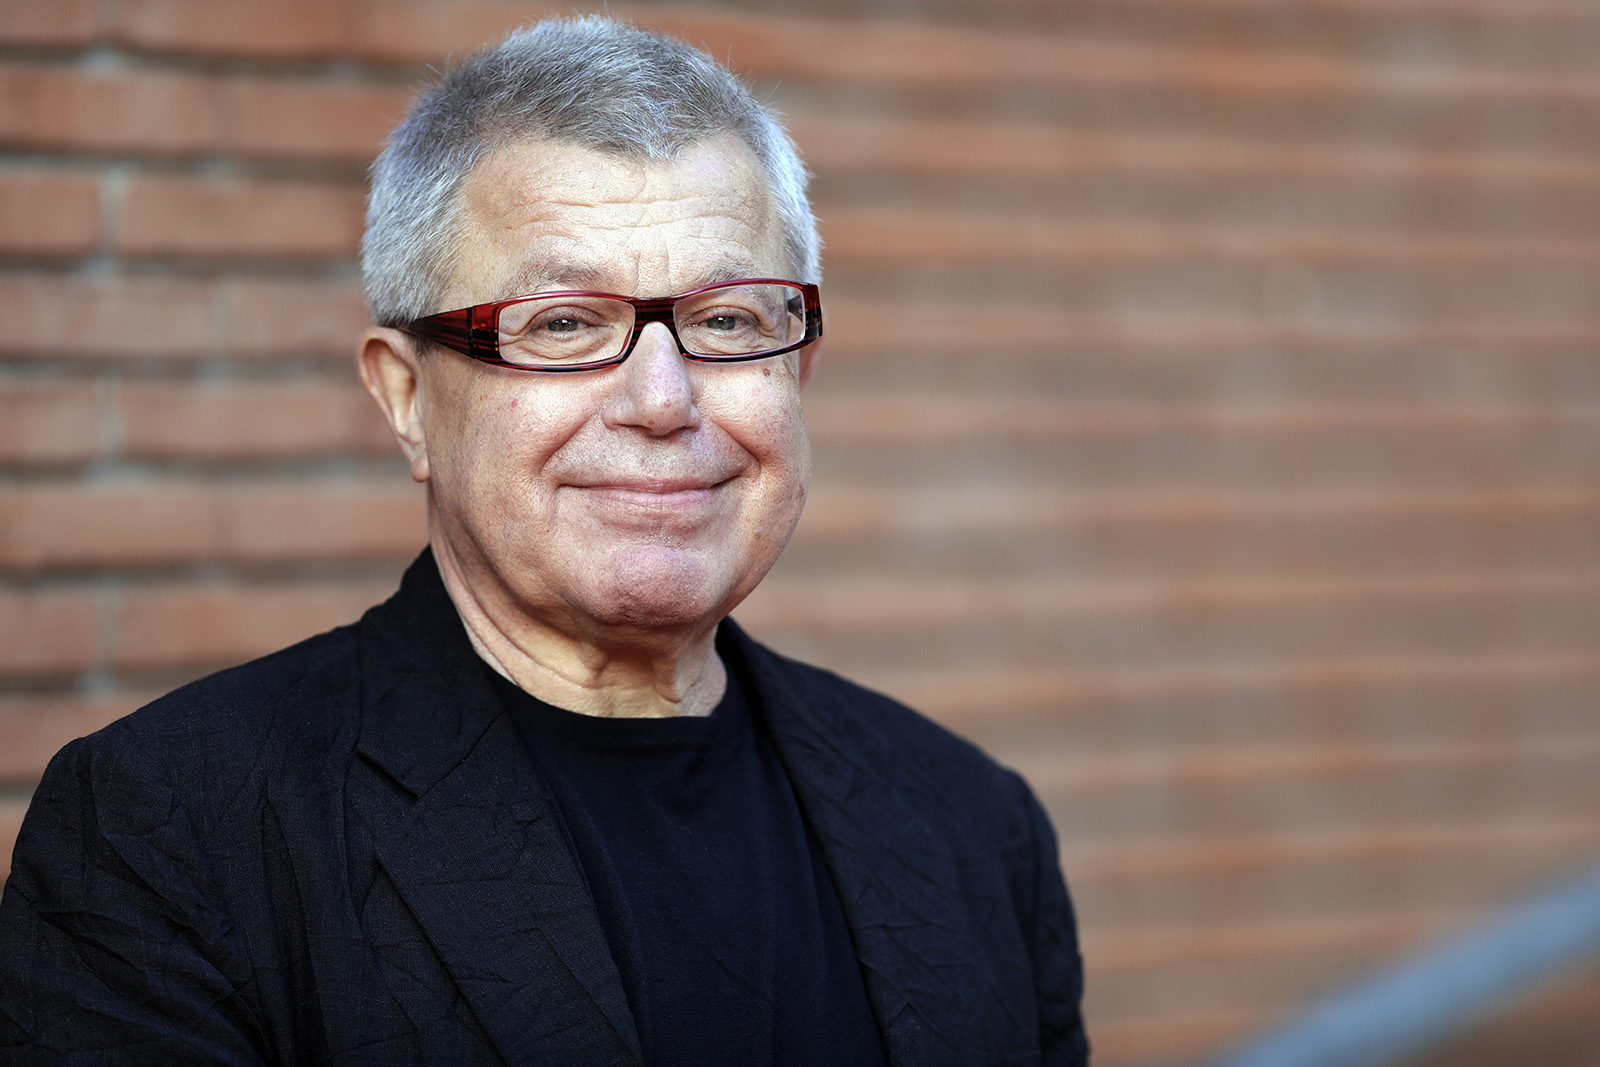 Architect Daniel Libeskind arrives for a conference at the Rome Film Festival, in Rome, on Oct. 21, 2016. (AP Photo/Andrew Medichini)